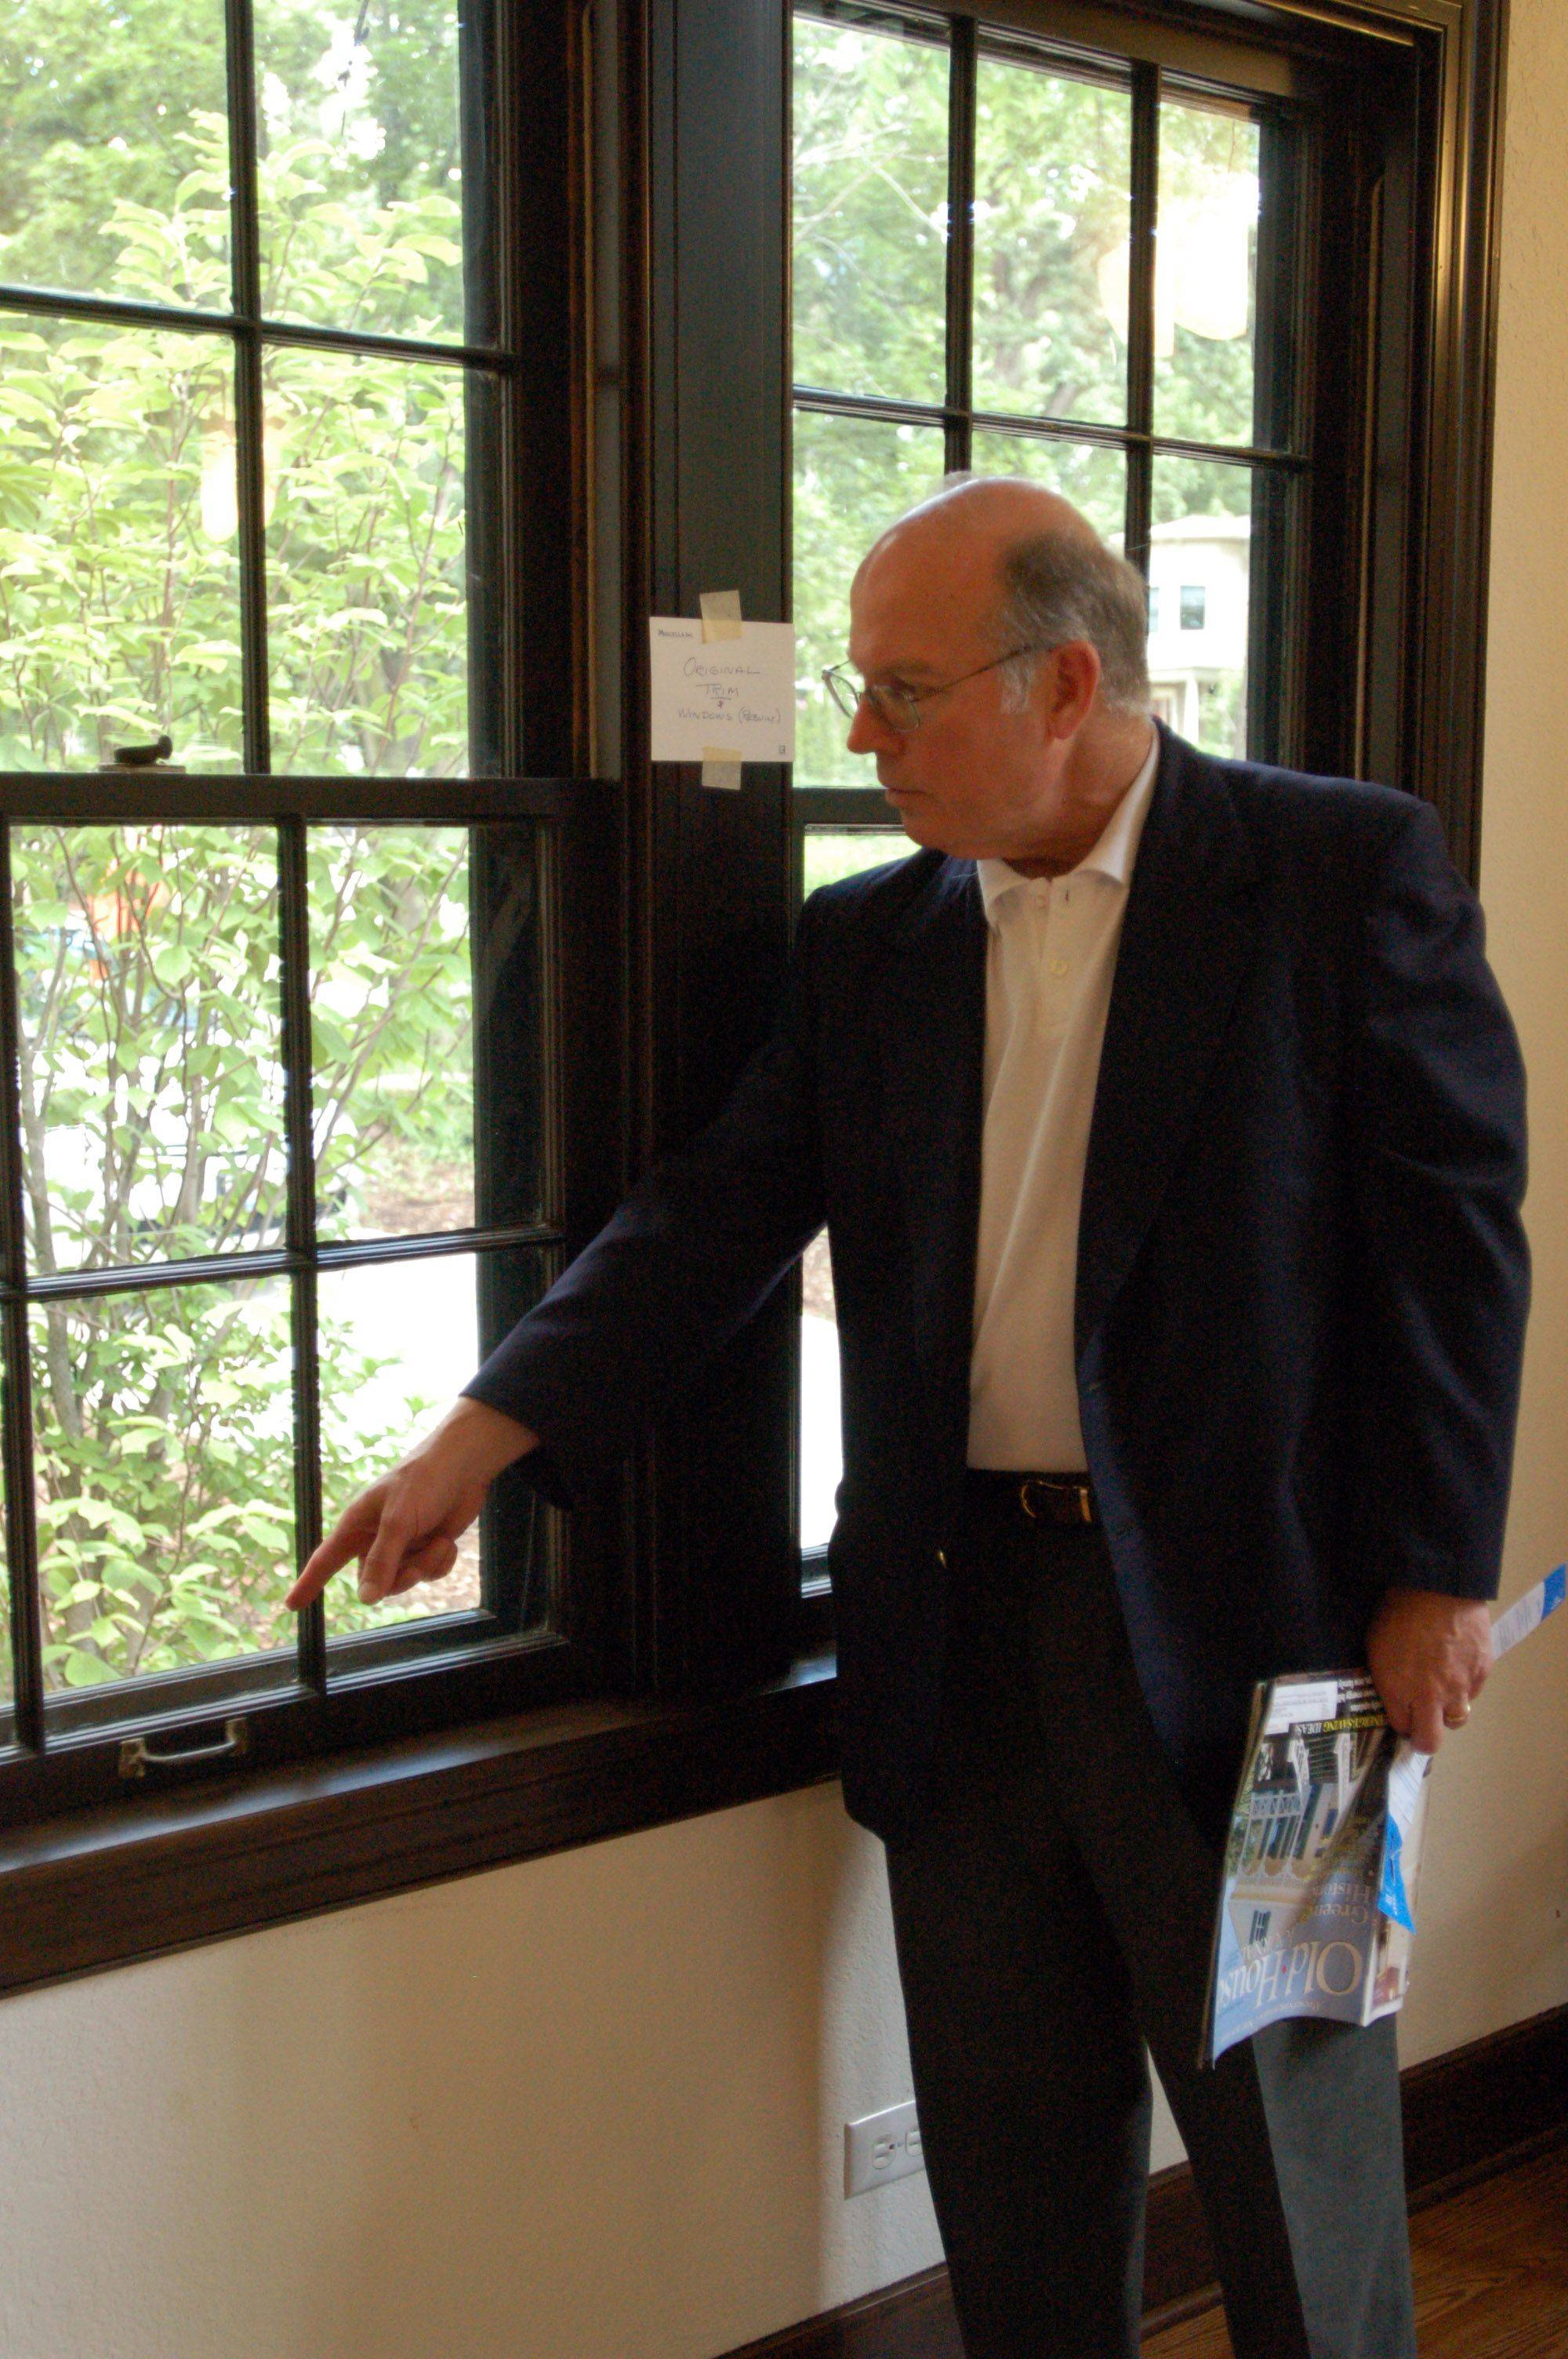 Mahaffey points out the energy-saving materials built around the original window panes in order to seal them.